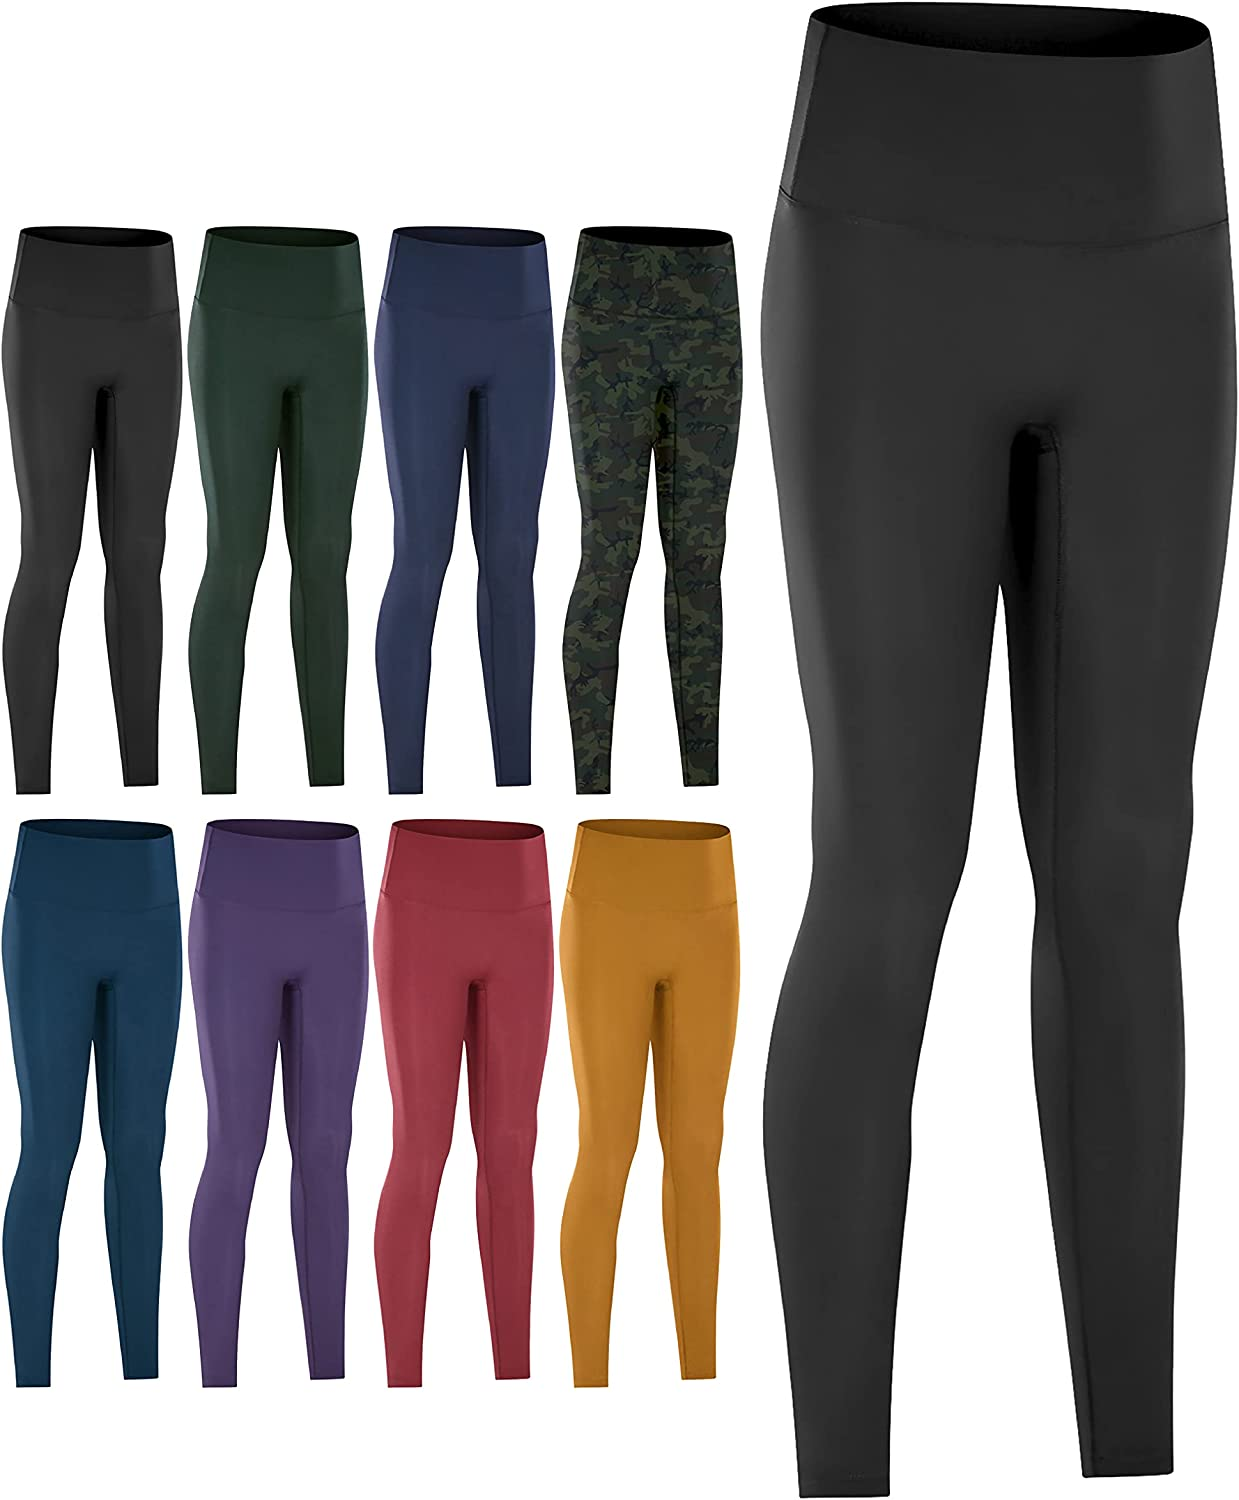 Kami Luckey Max 76% OFF No Cameltoe Front High Recommended Seamless Waisted Legg Seam